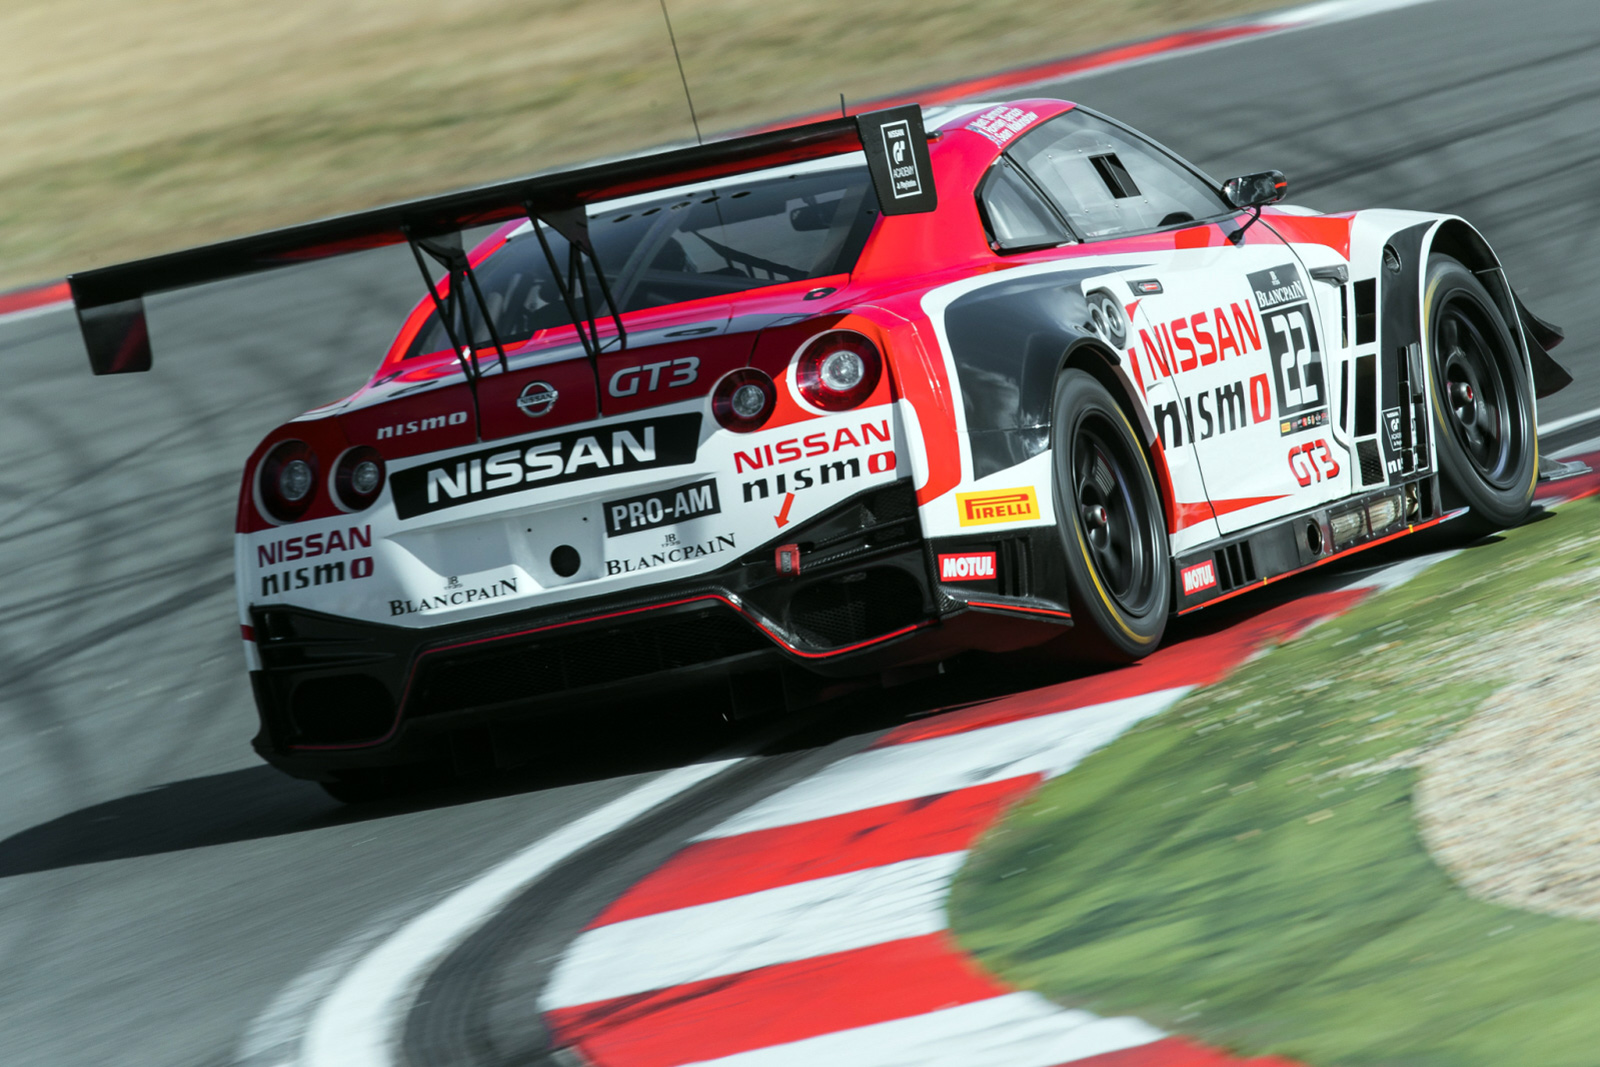 The No.22 Nissan GT-R NISMO GT3 showed good pace.